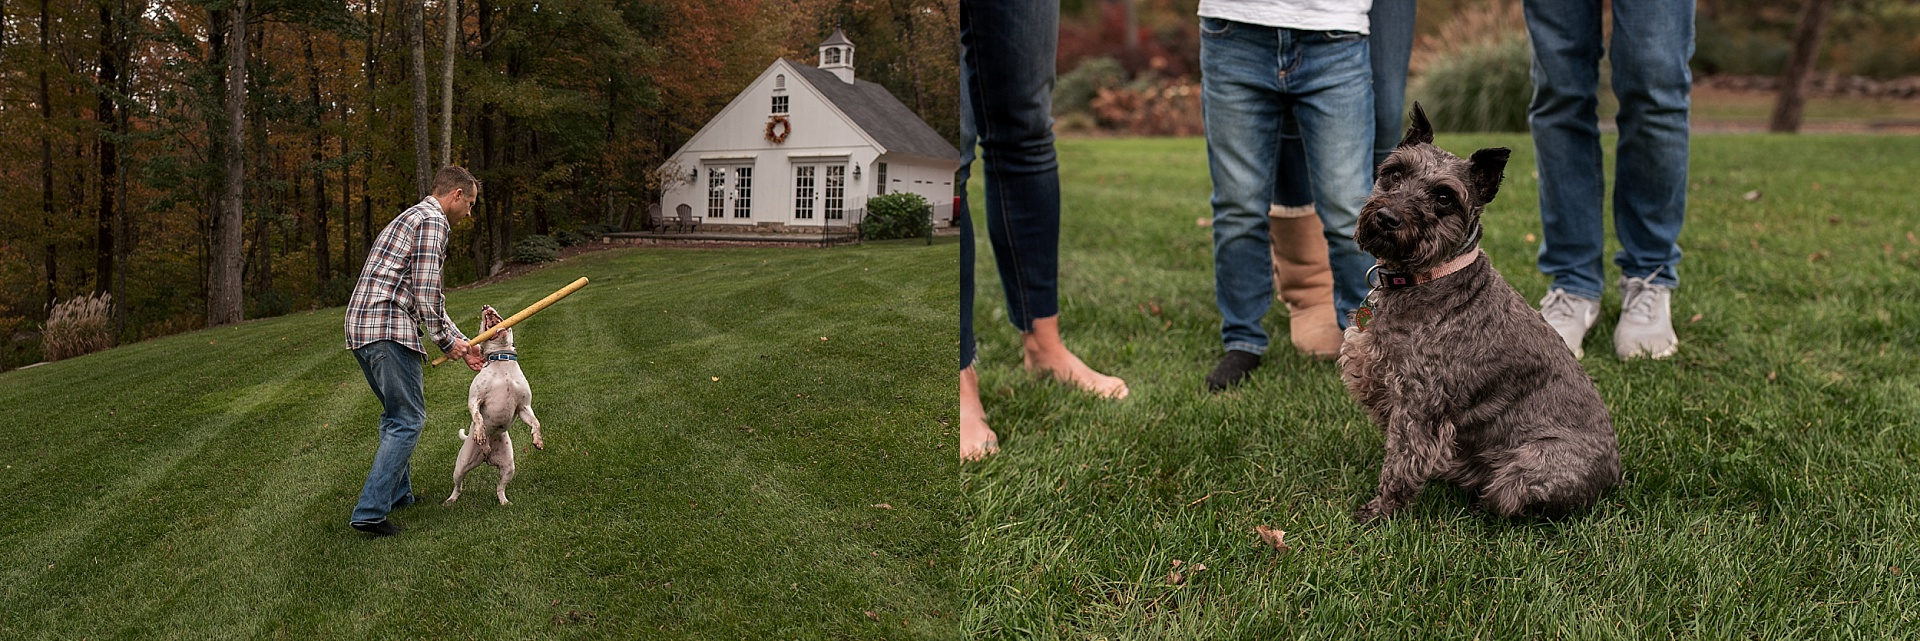 family dogs playing in yard during litchfield county photography session